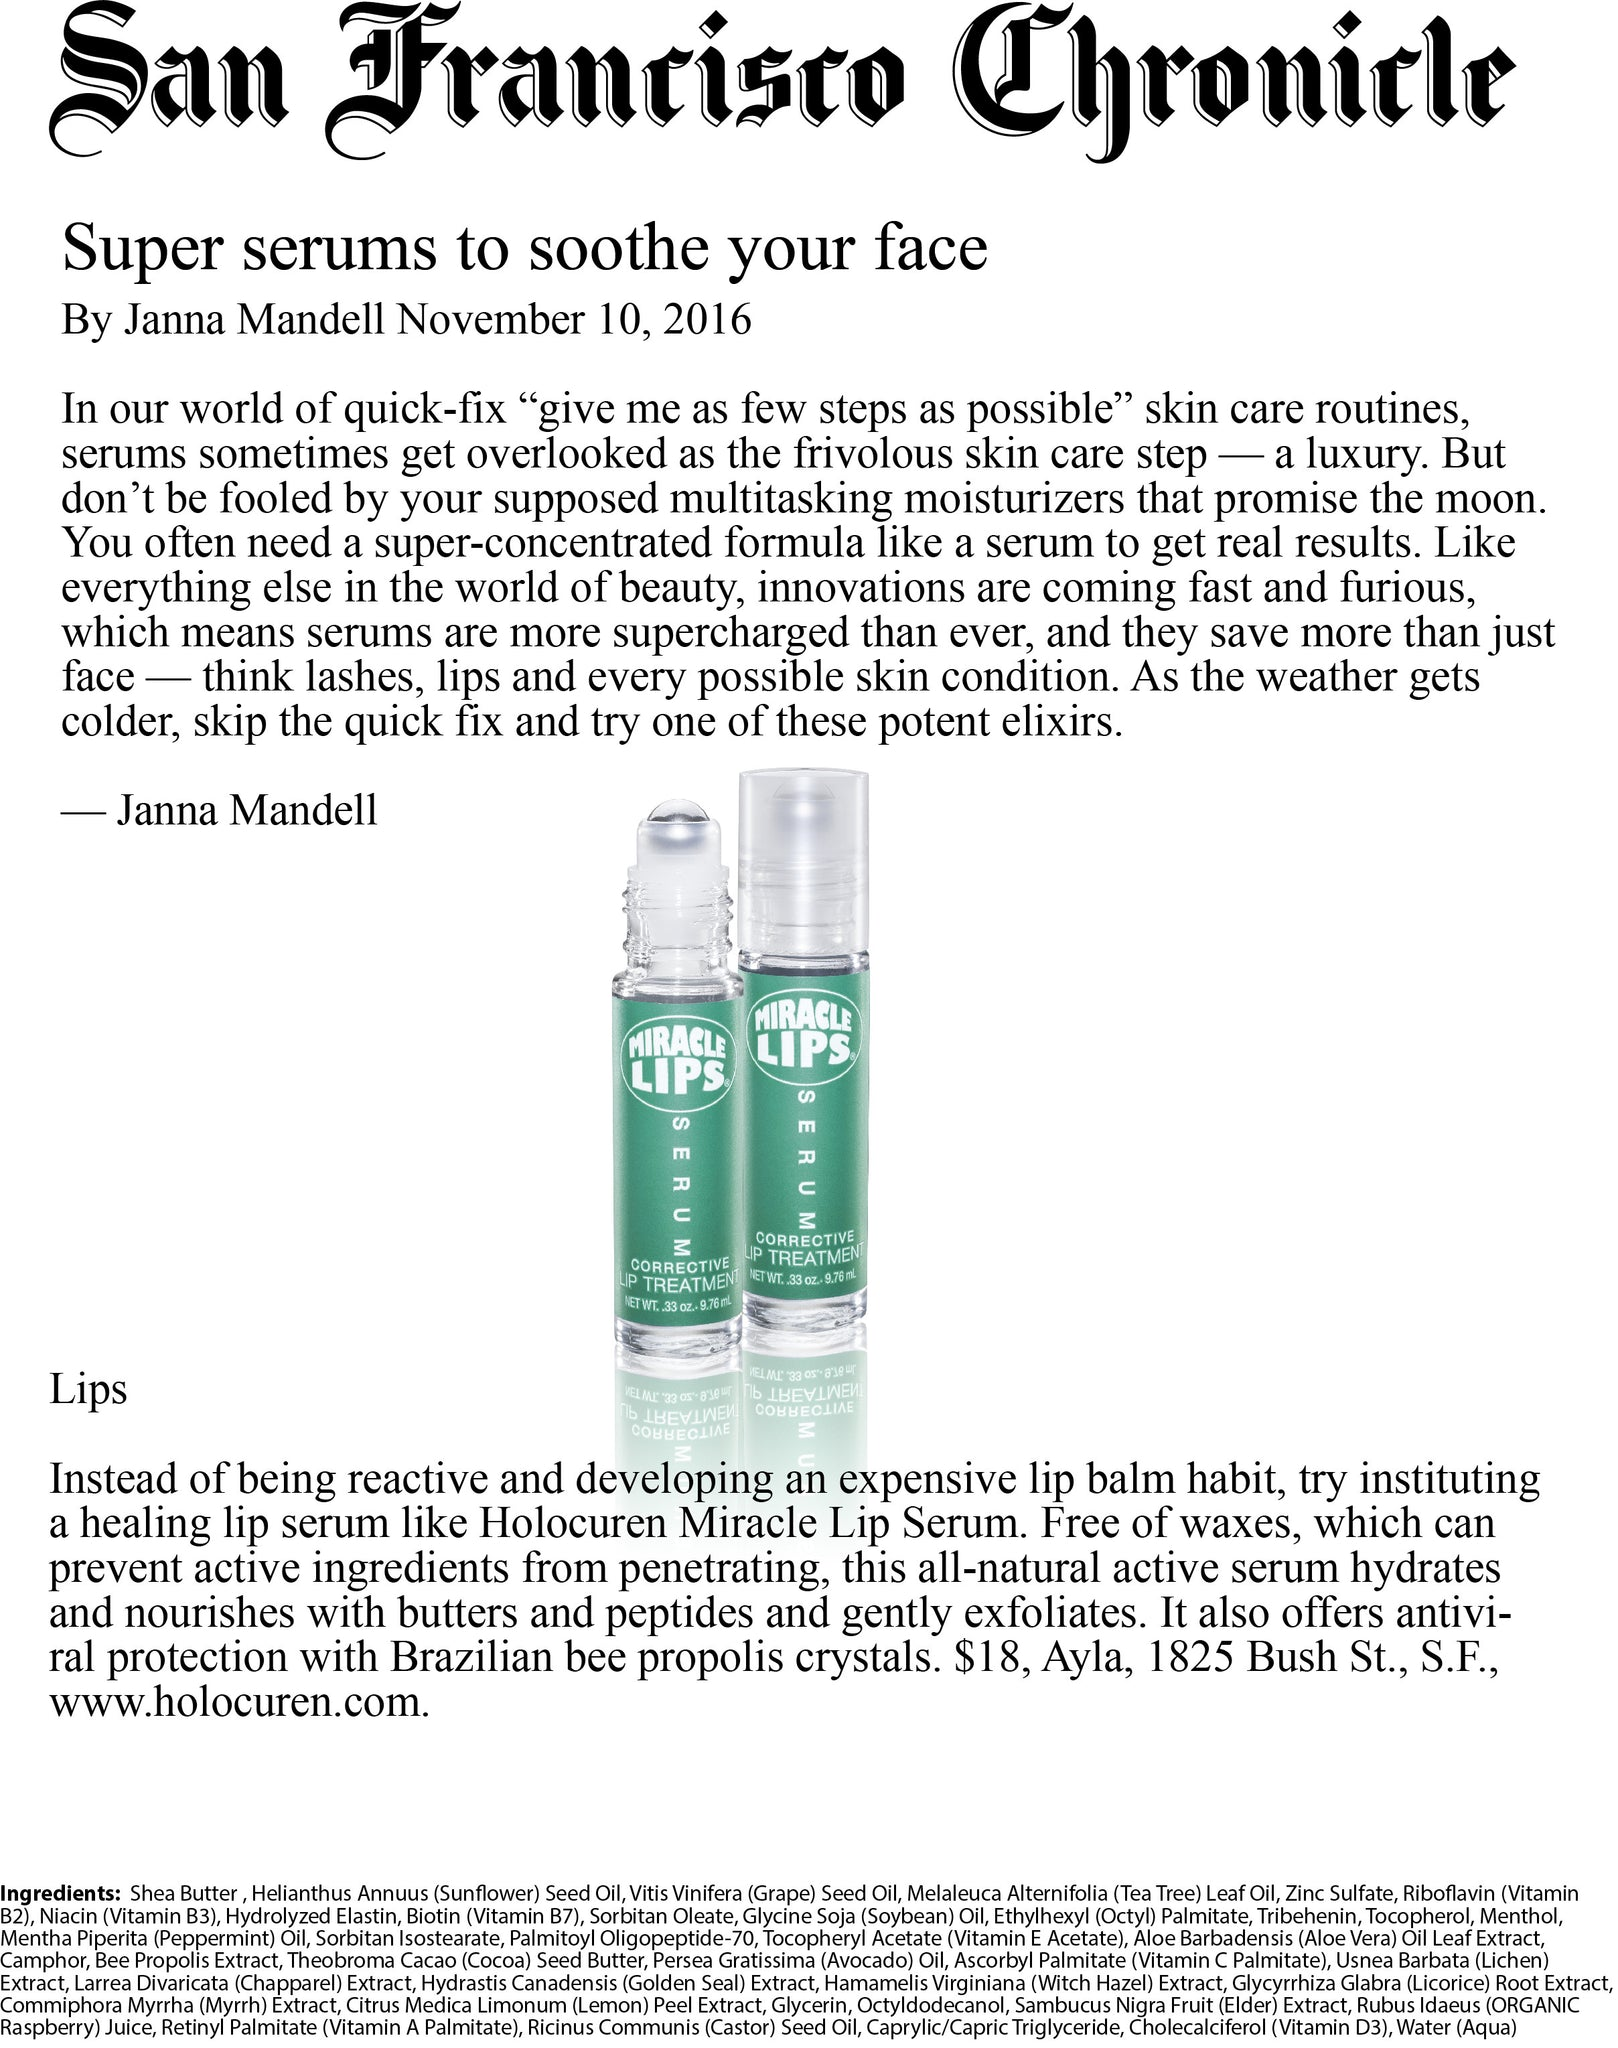 San Francisco Chronicle Miracle Lips Review 11/2016